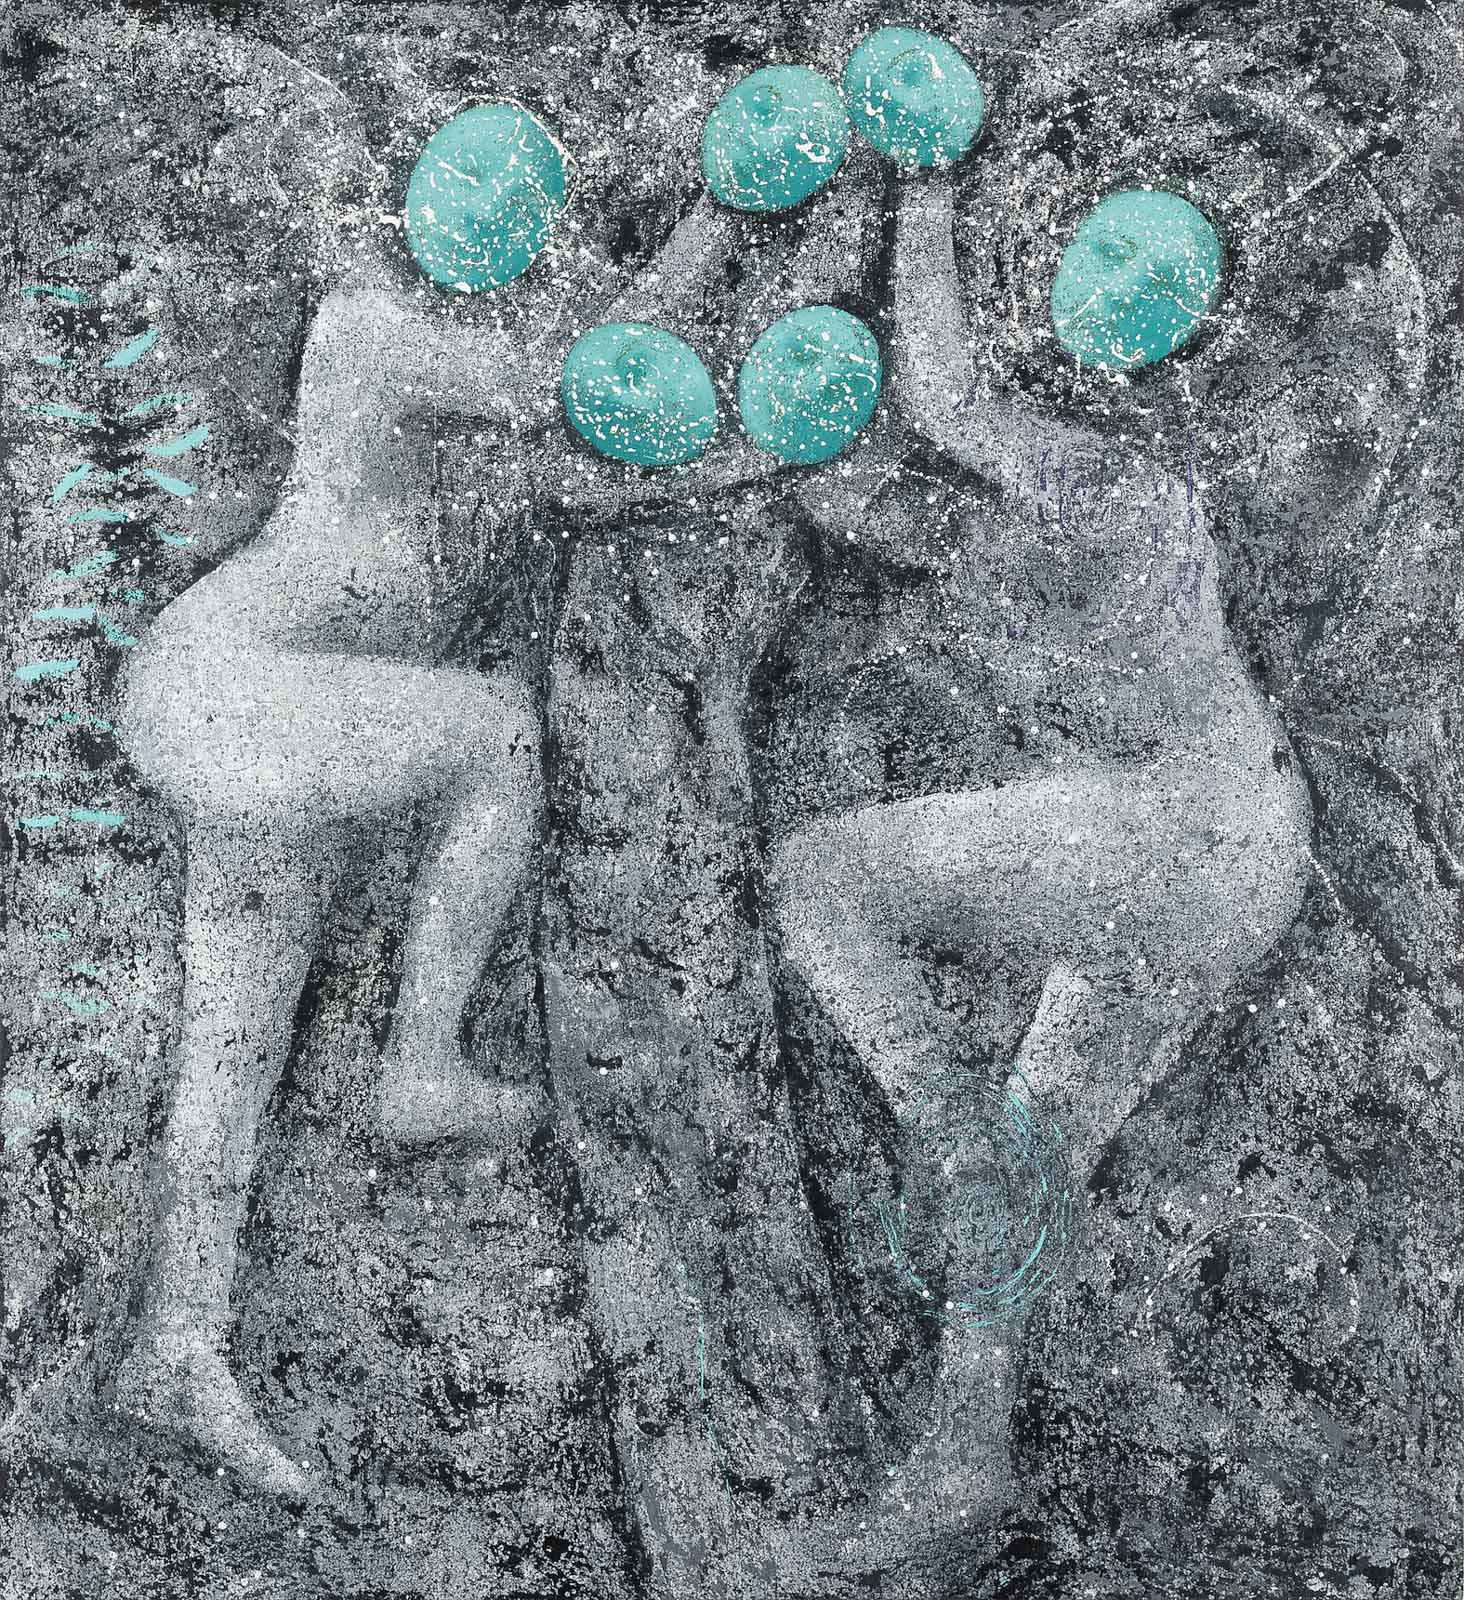 Poses Plastiques, 2018 Oil, pumice and pastel on aluminum honeycomb panel, 164 x 150 cm